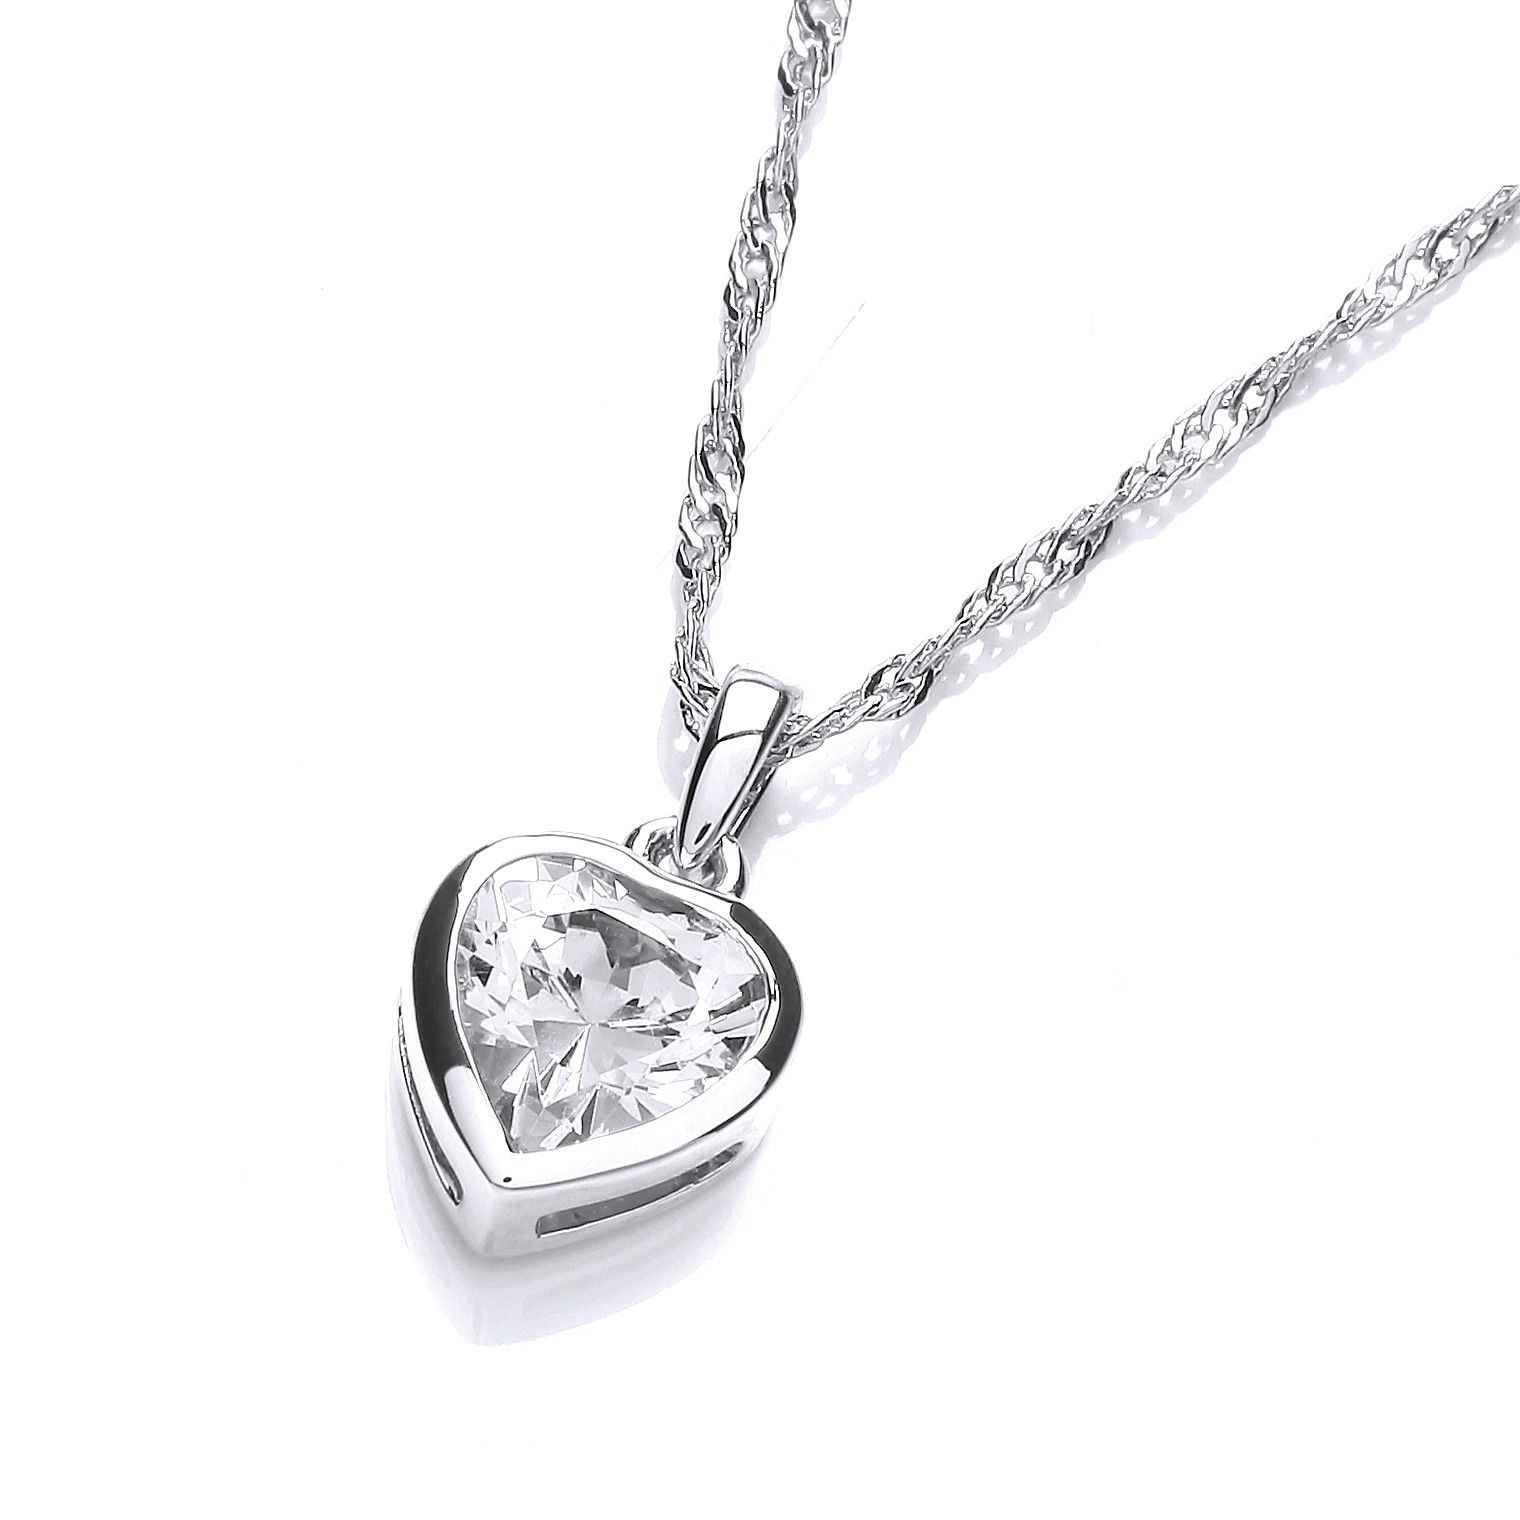 Rhodium plated simple heart pendant heart pinterest pendants timeless and elegant this simple pendant hand set with a flawless heart shaped cubic zirconia suspended on an exquisite diamond cut twisted curb chain aloadofball Choice Image